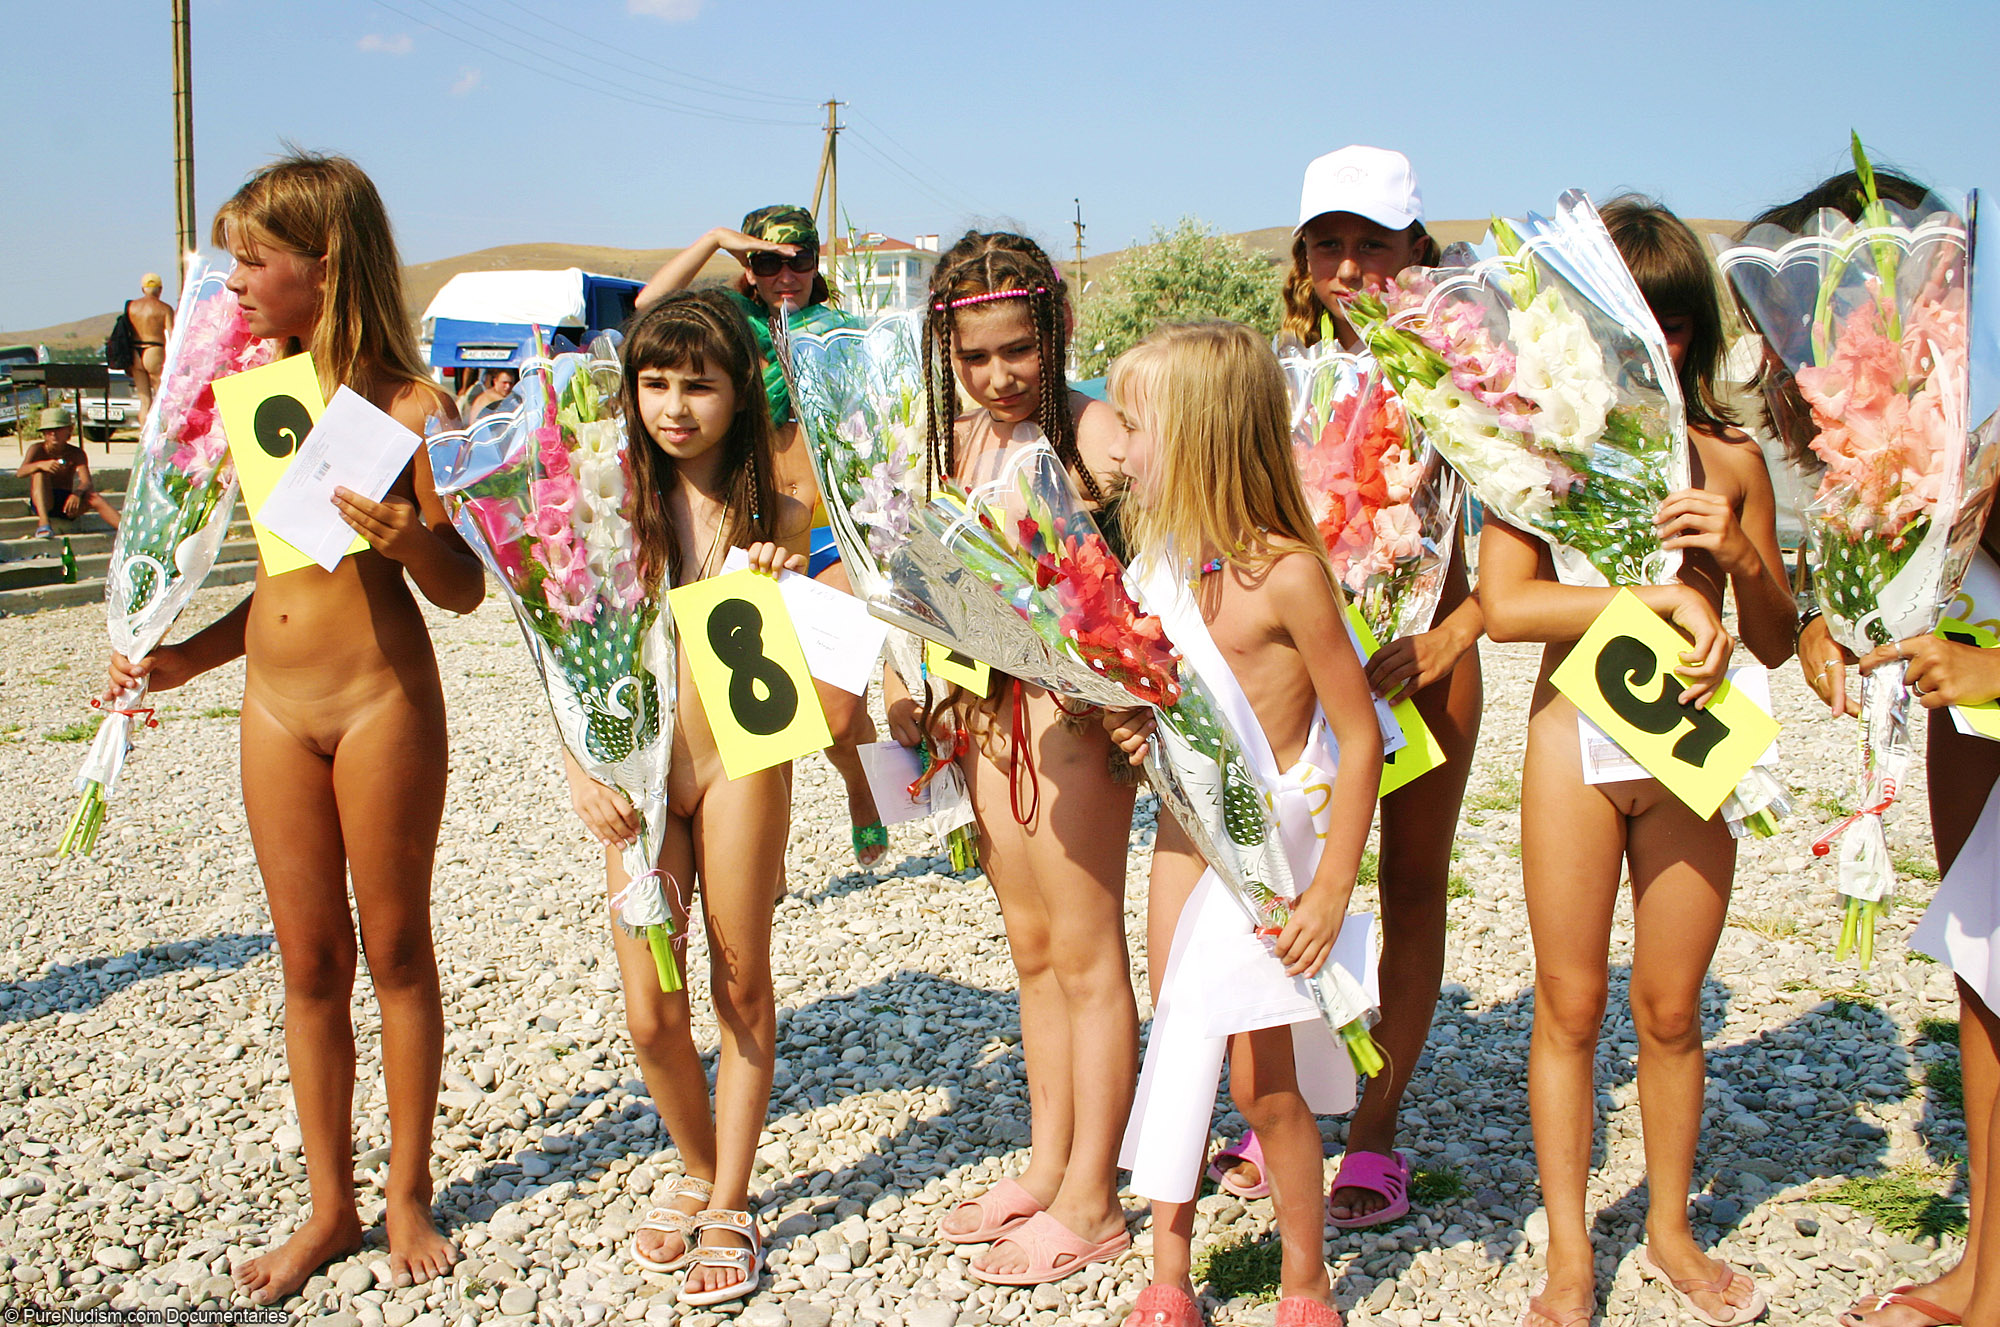 pure junire nudist COM - Girl Winners In Our Miss Naturist Contest Picture